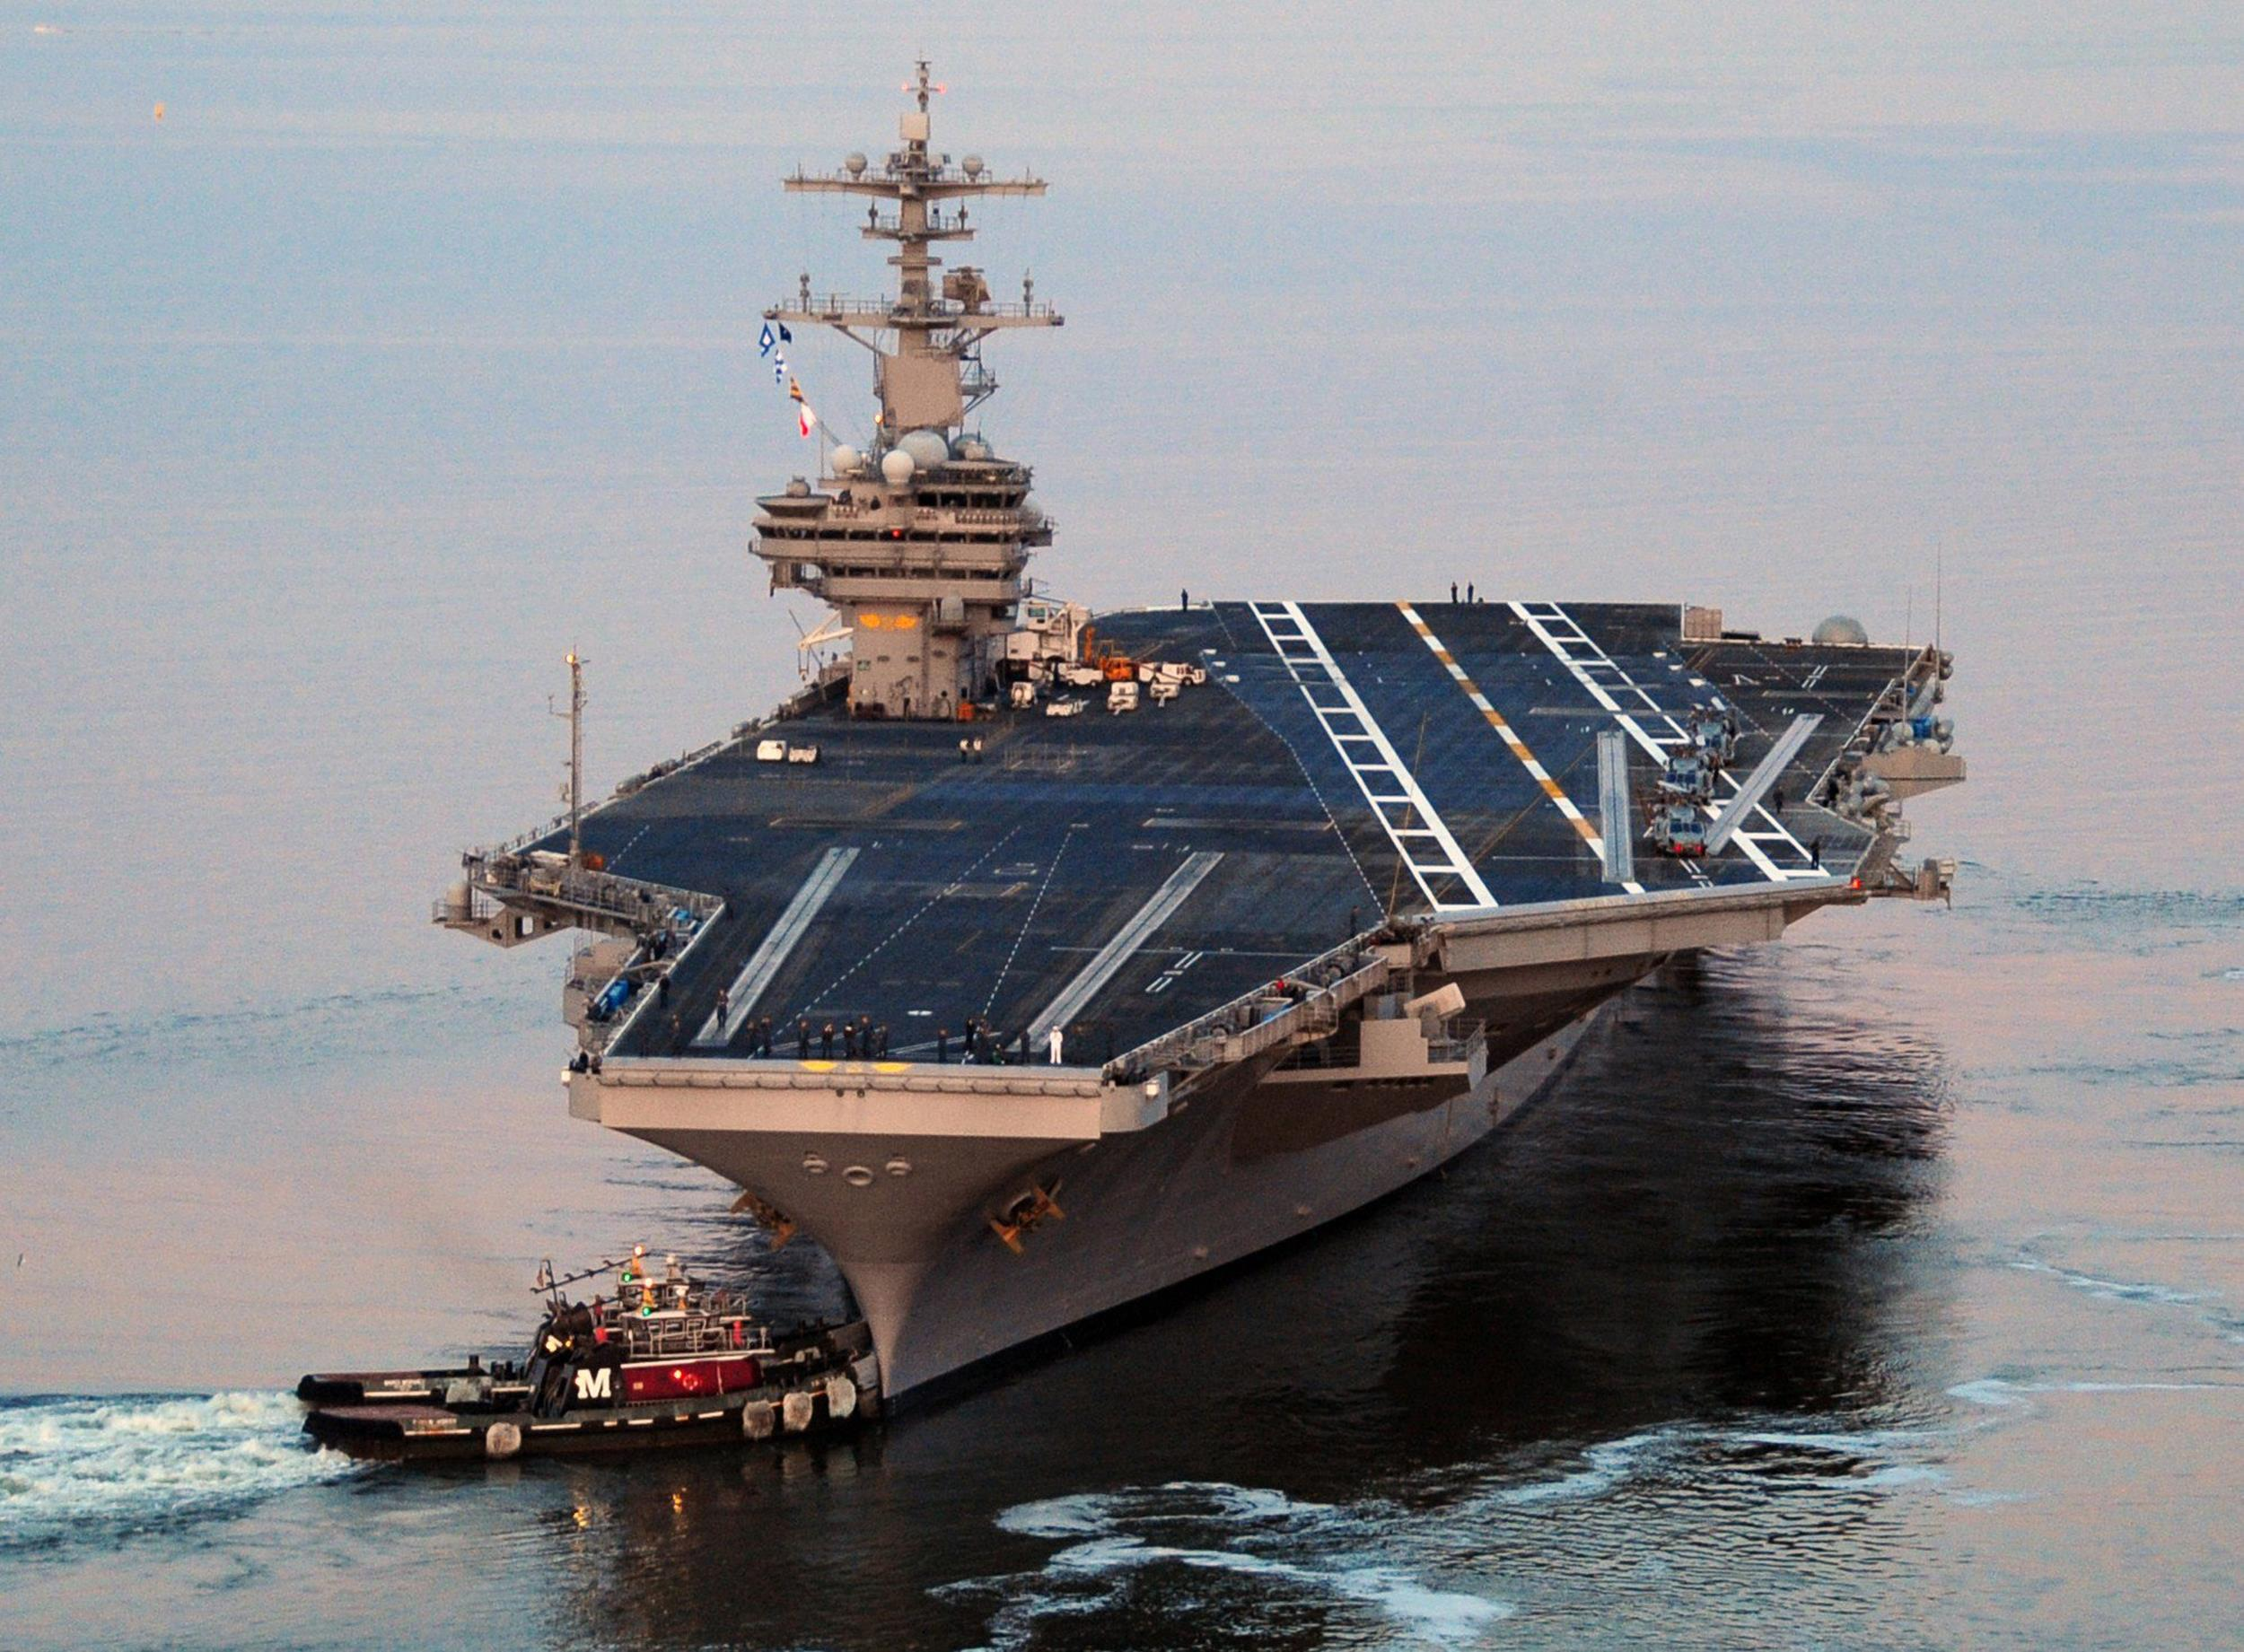 Image: The Nimitz-class aircraft carrier USS George H.W. Bush as it departs Naval Station Norfolk for its maiden deployment on May 11, 2011.